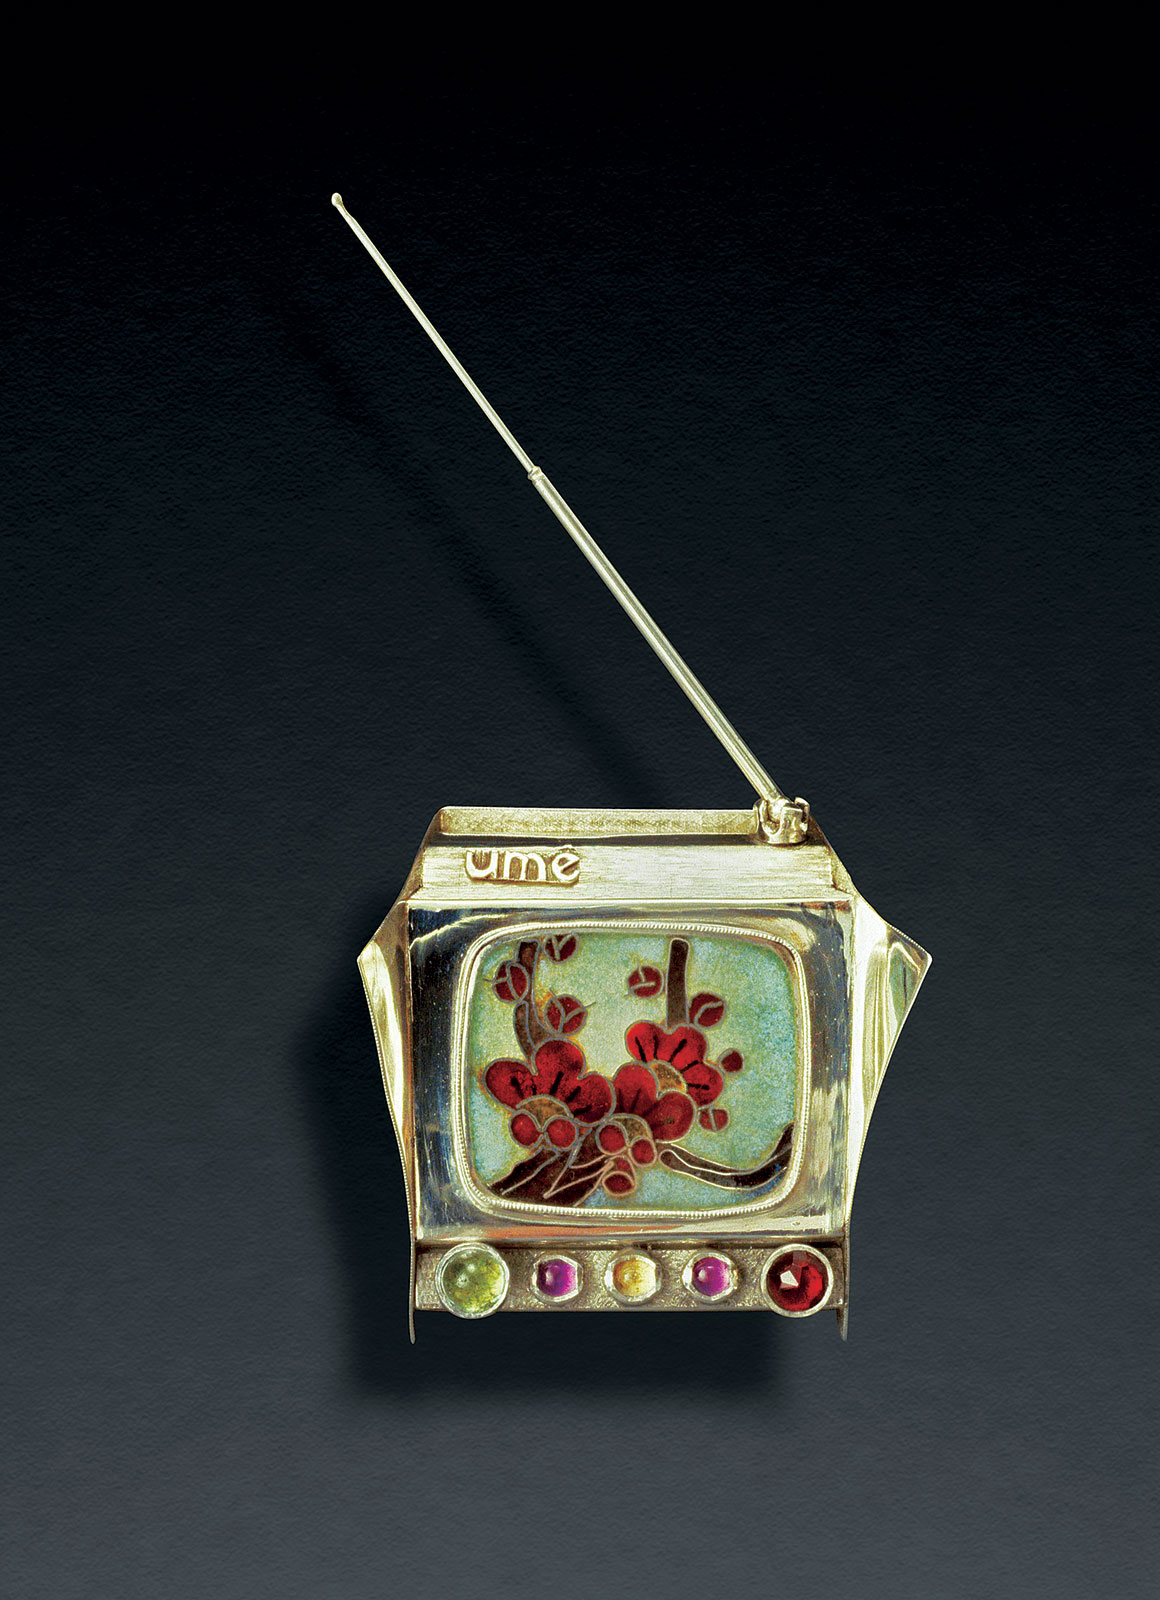 UME TV RING CONTAINER of sterling silver,  cloisonné  enamel, jeweled knobs, rotating antenna, 1976.